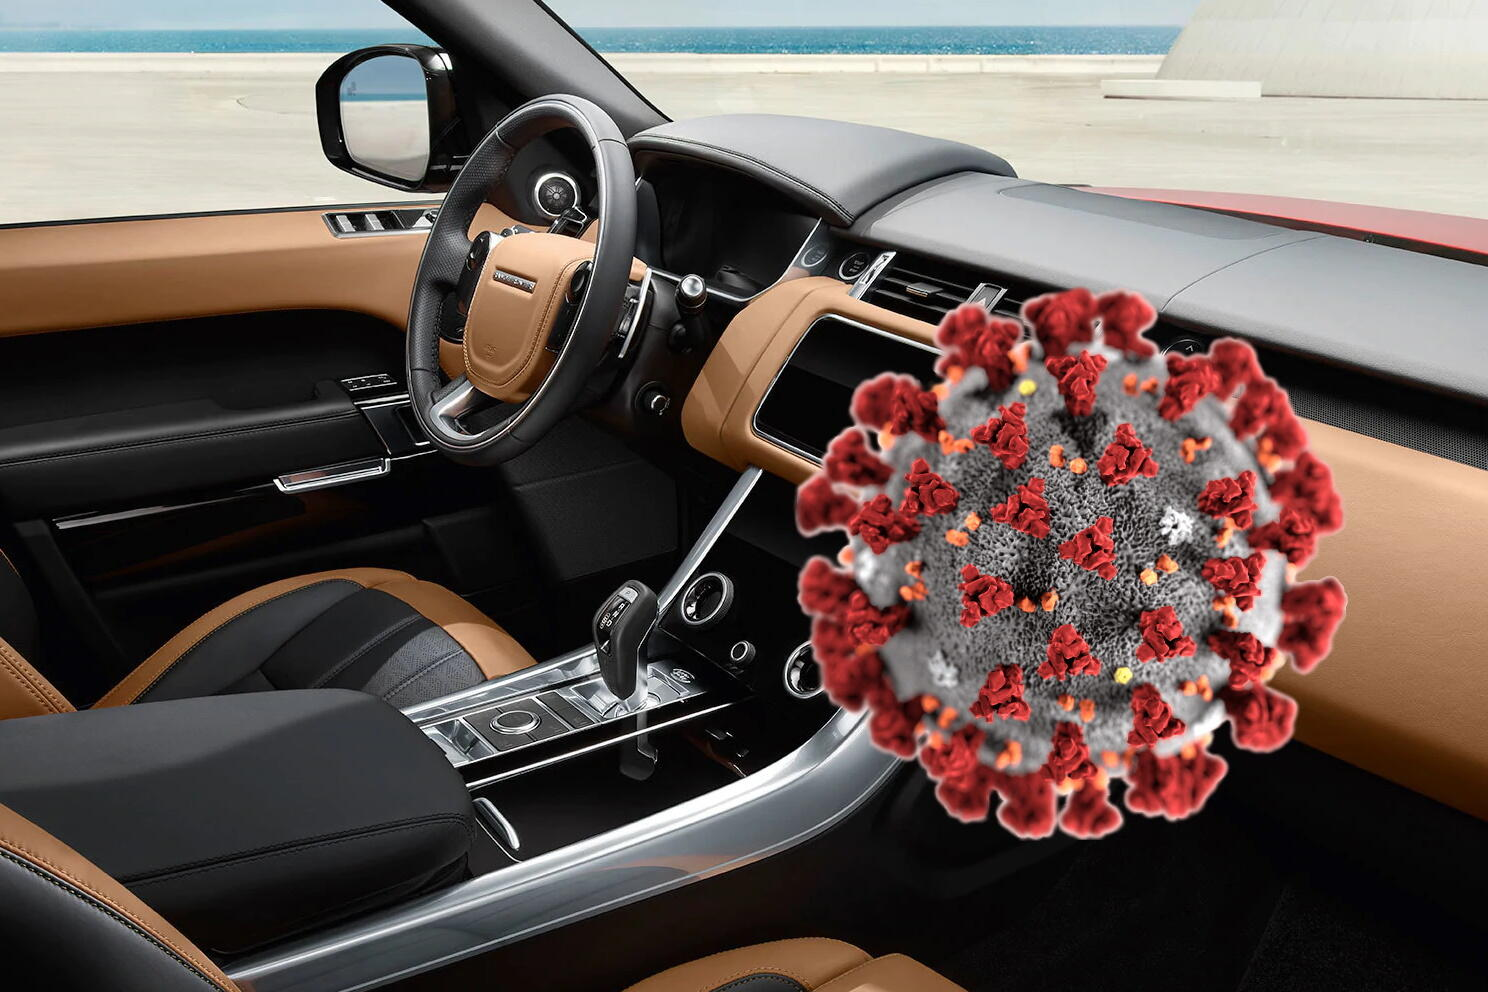 Viruses and germs in cars